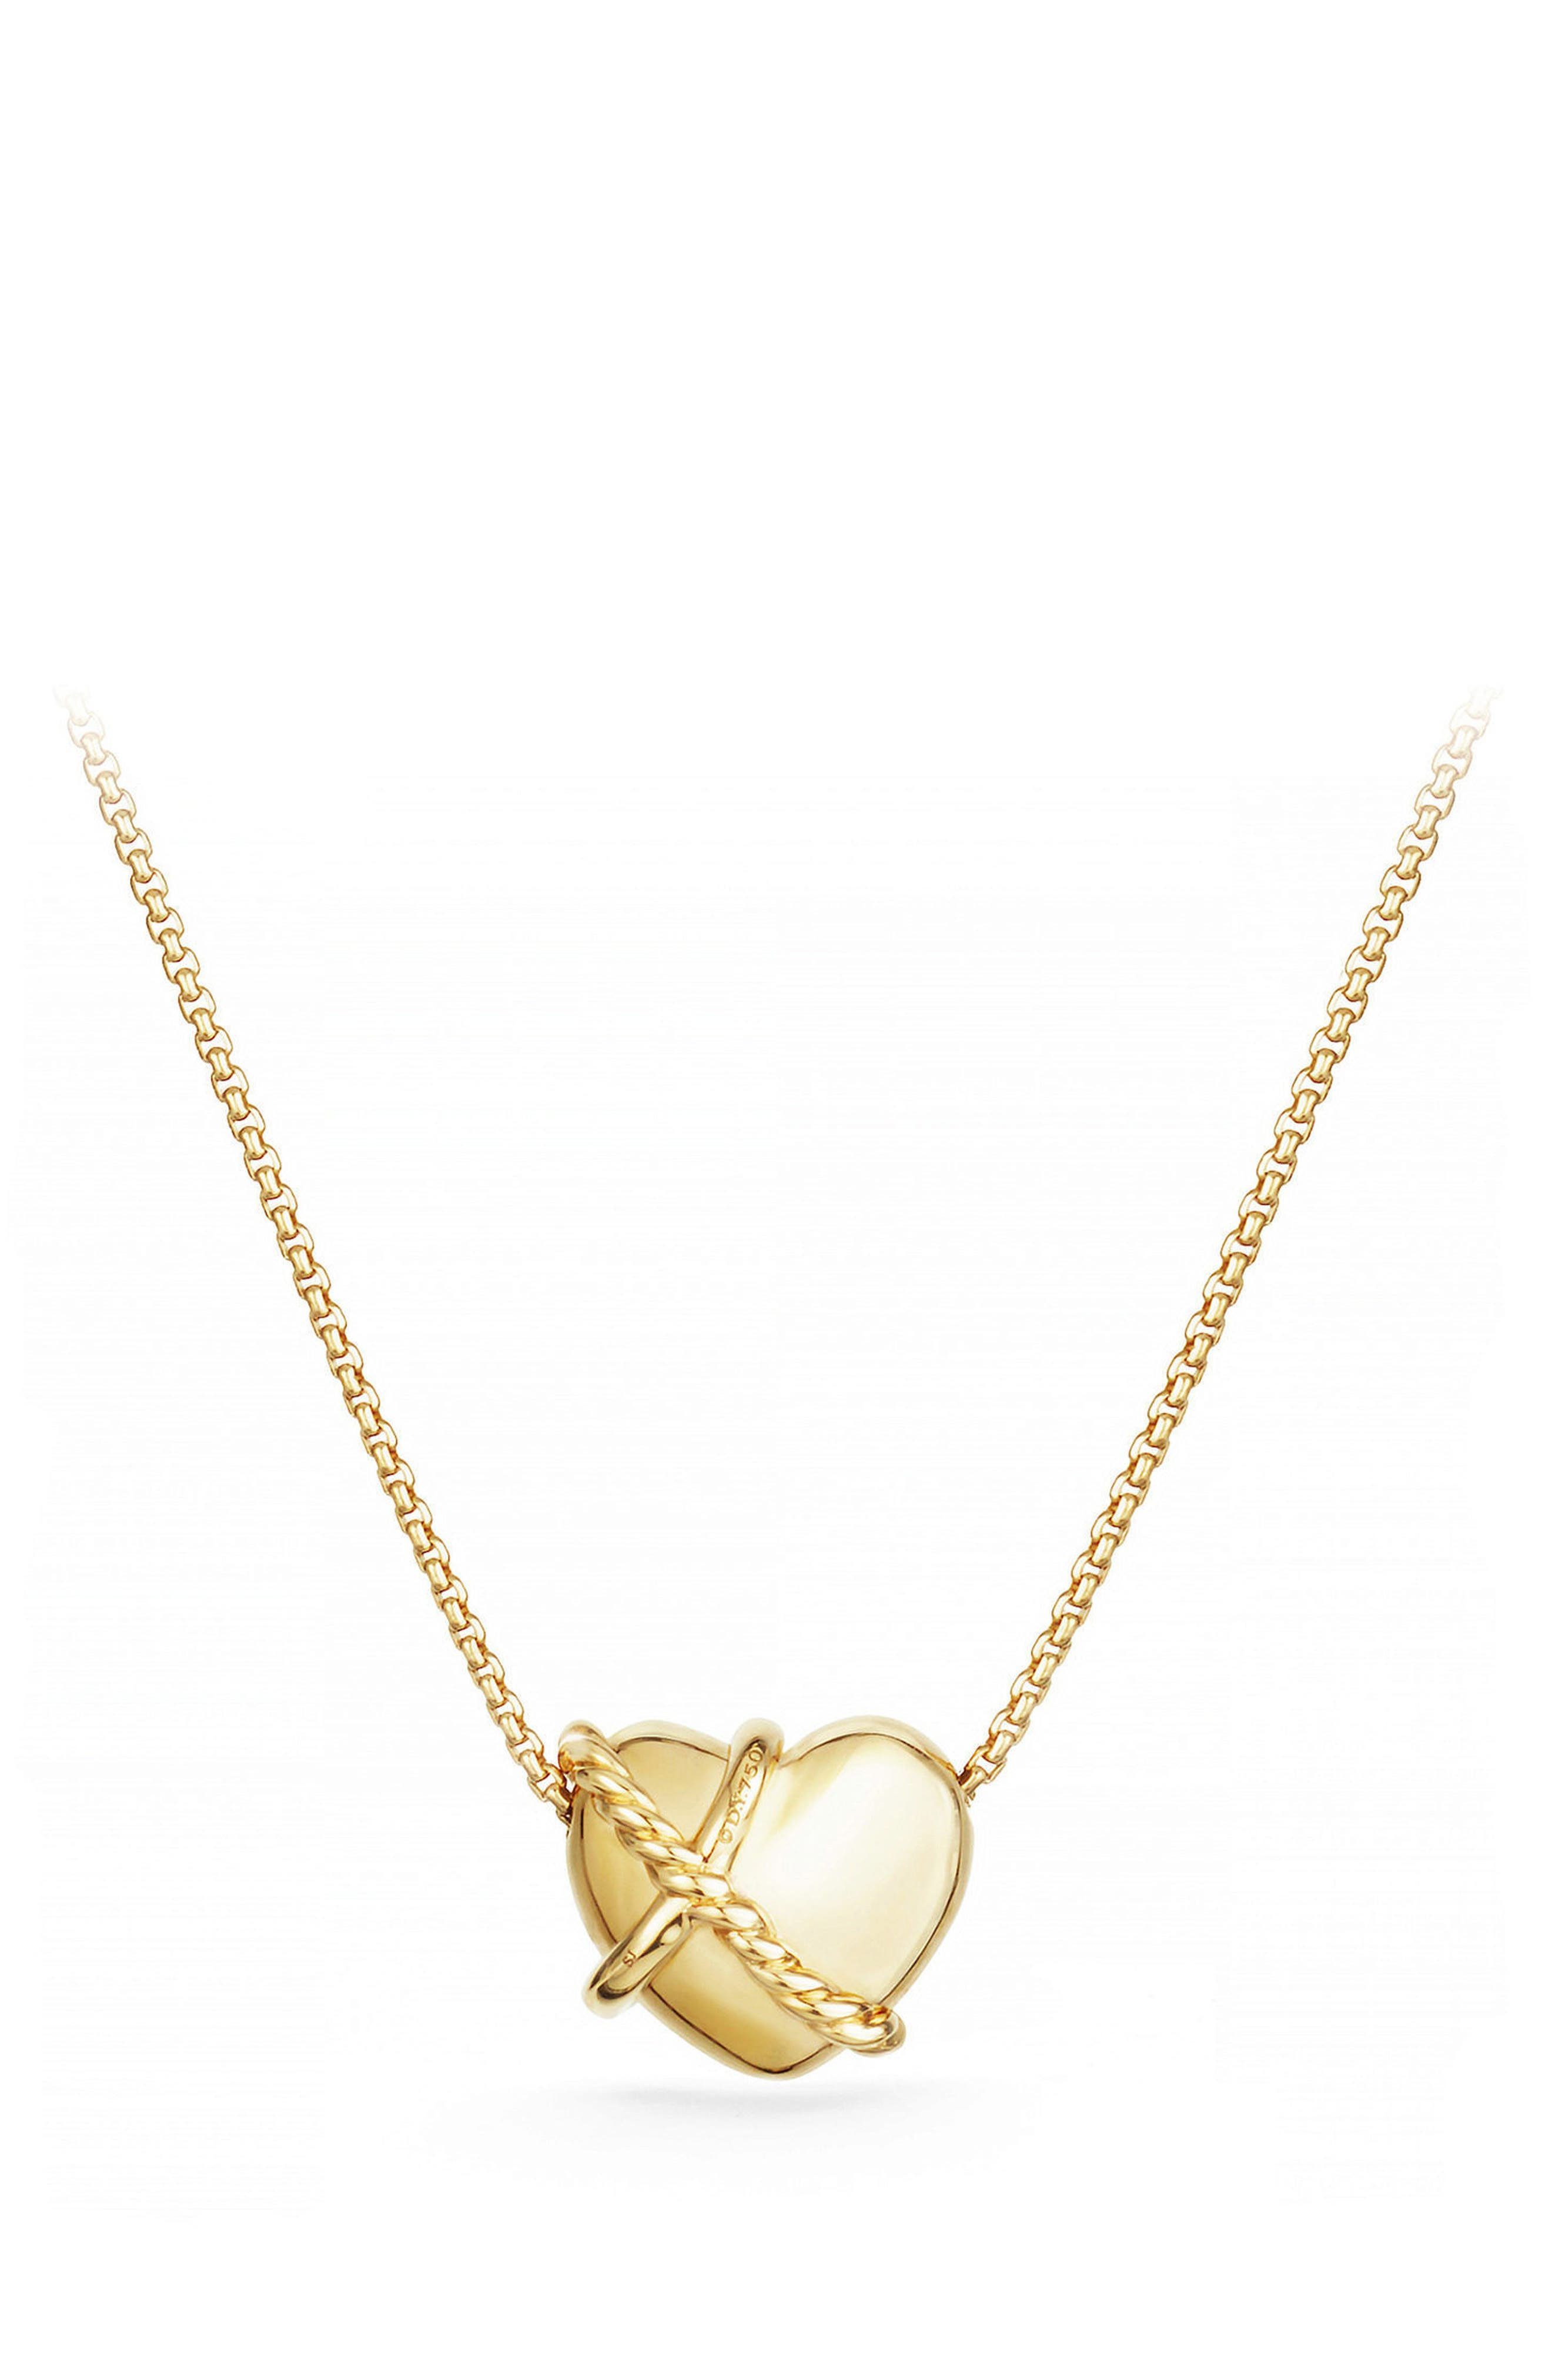 Heart Pendant Necklace in 18K Gold with Diamonds,                             Alternate thumbnail 3, color,                             Yellow Gold/ Diamond